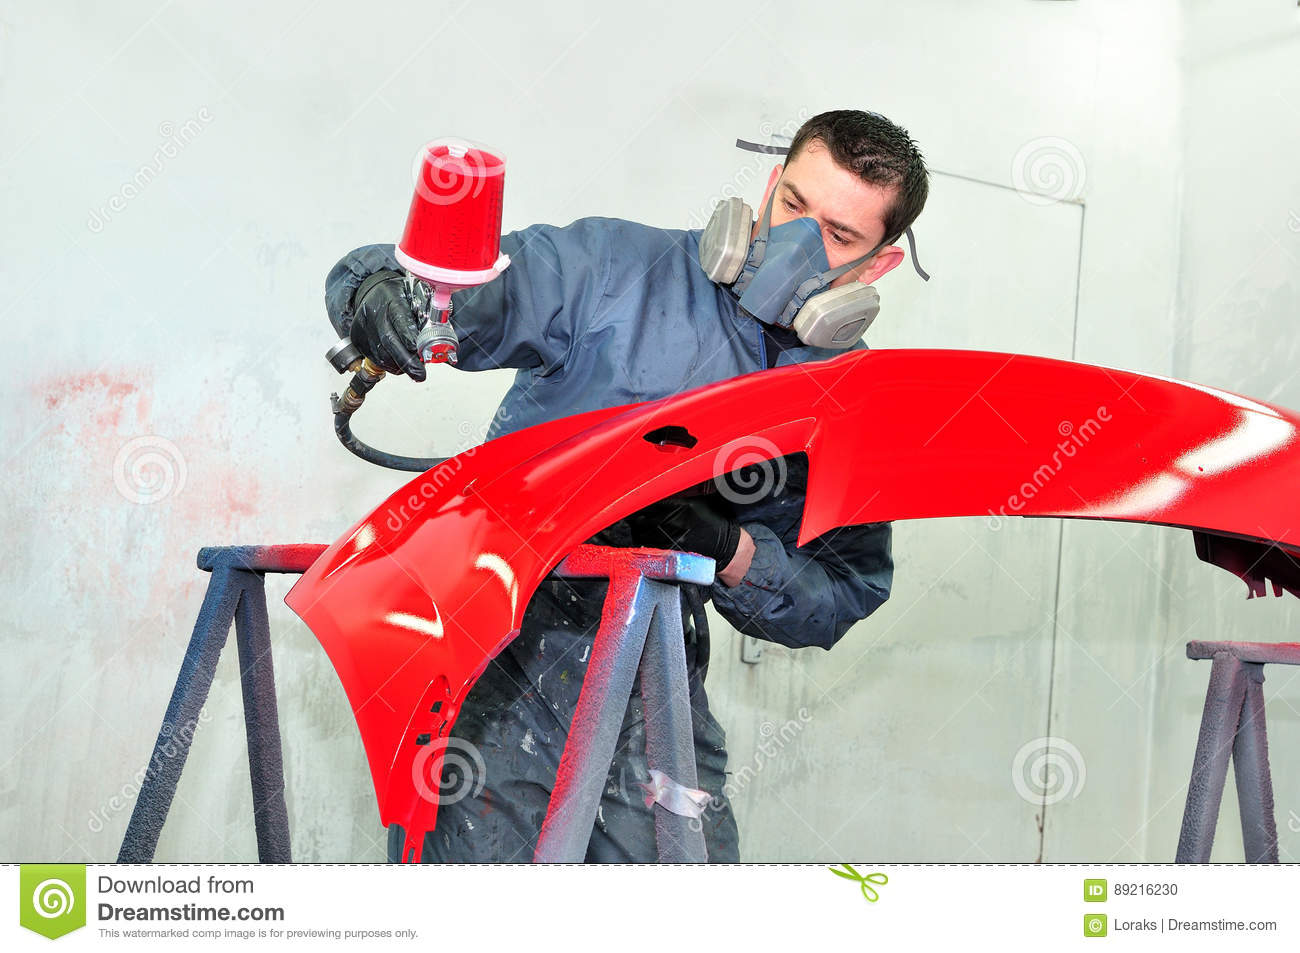 Worker painting red car bumper.